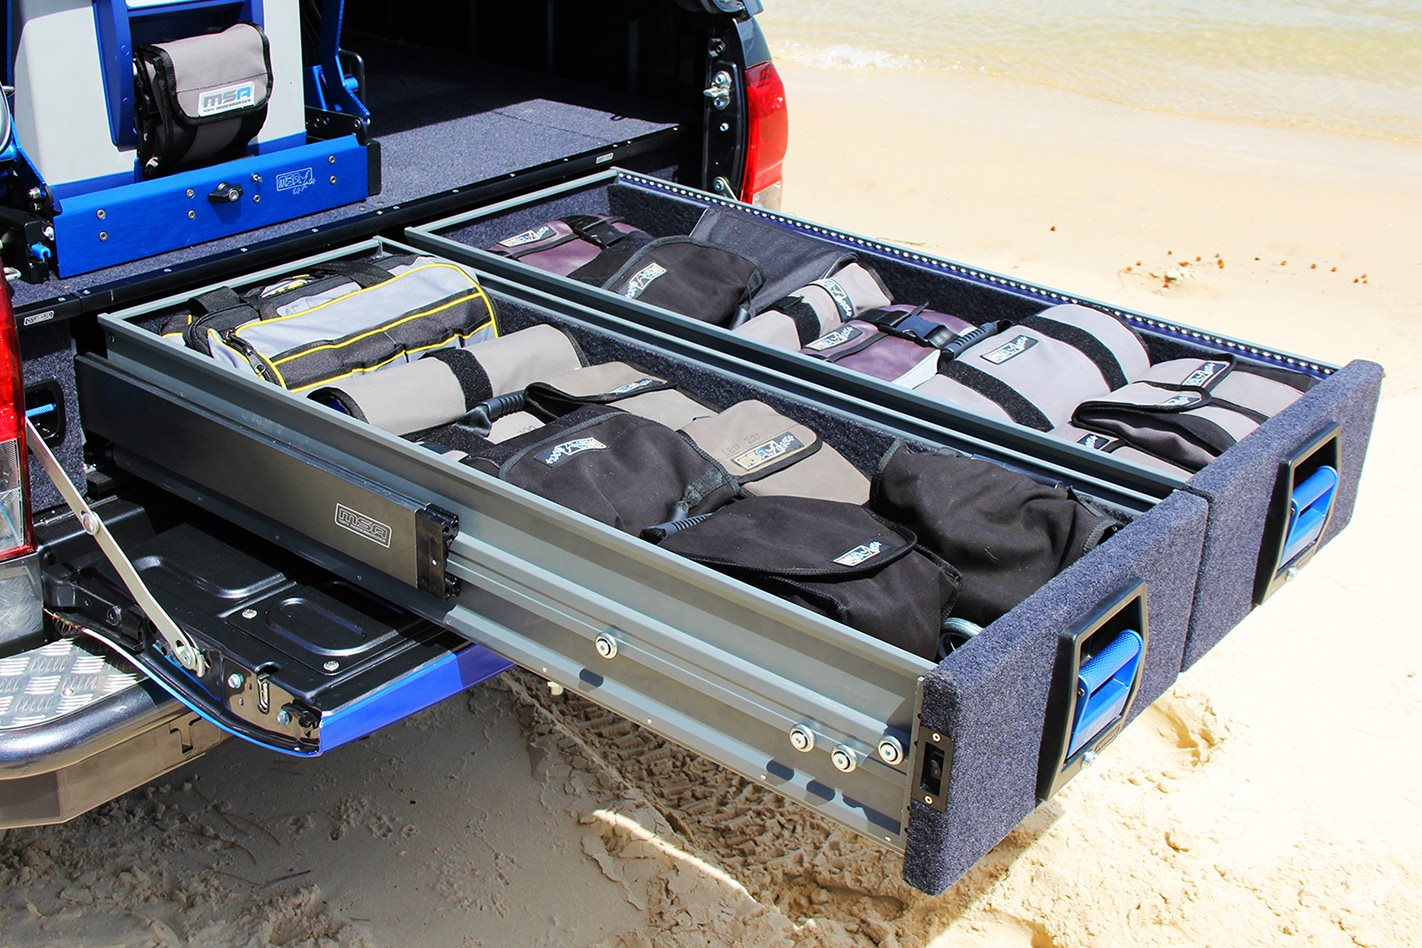 MSA 4X4 EXPLORER STORAGE DRAWER SYSTEM